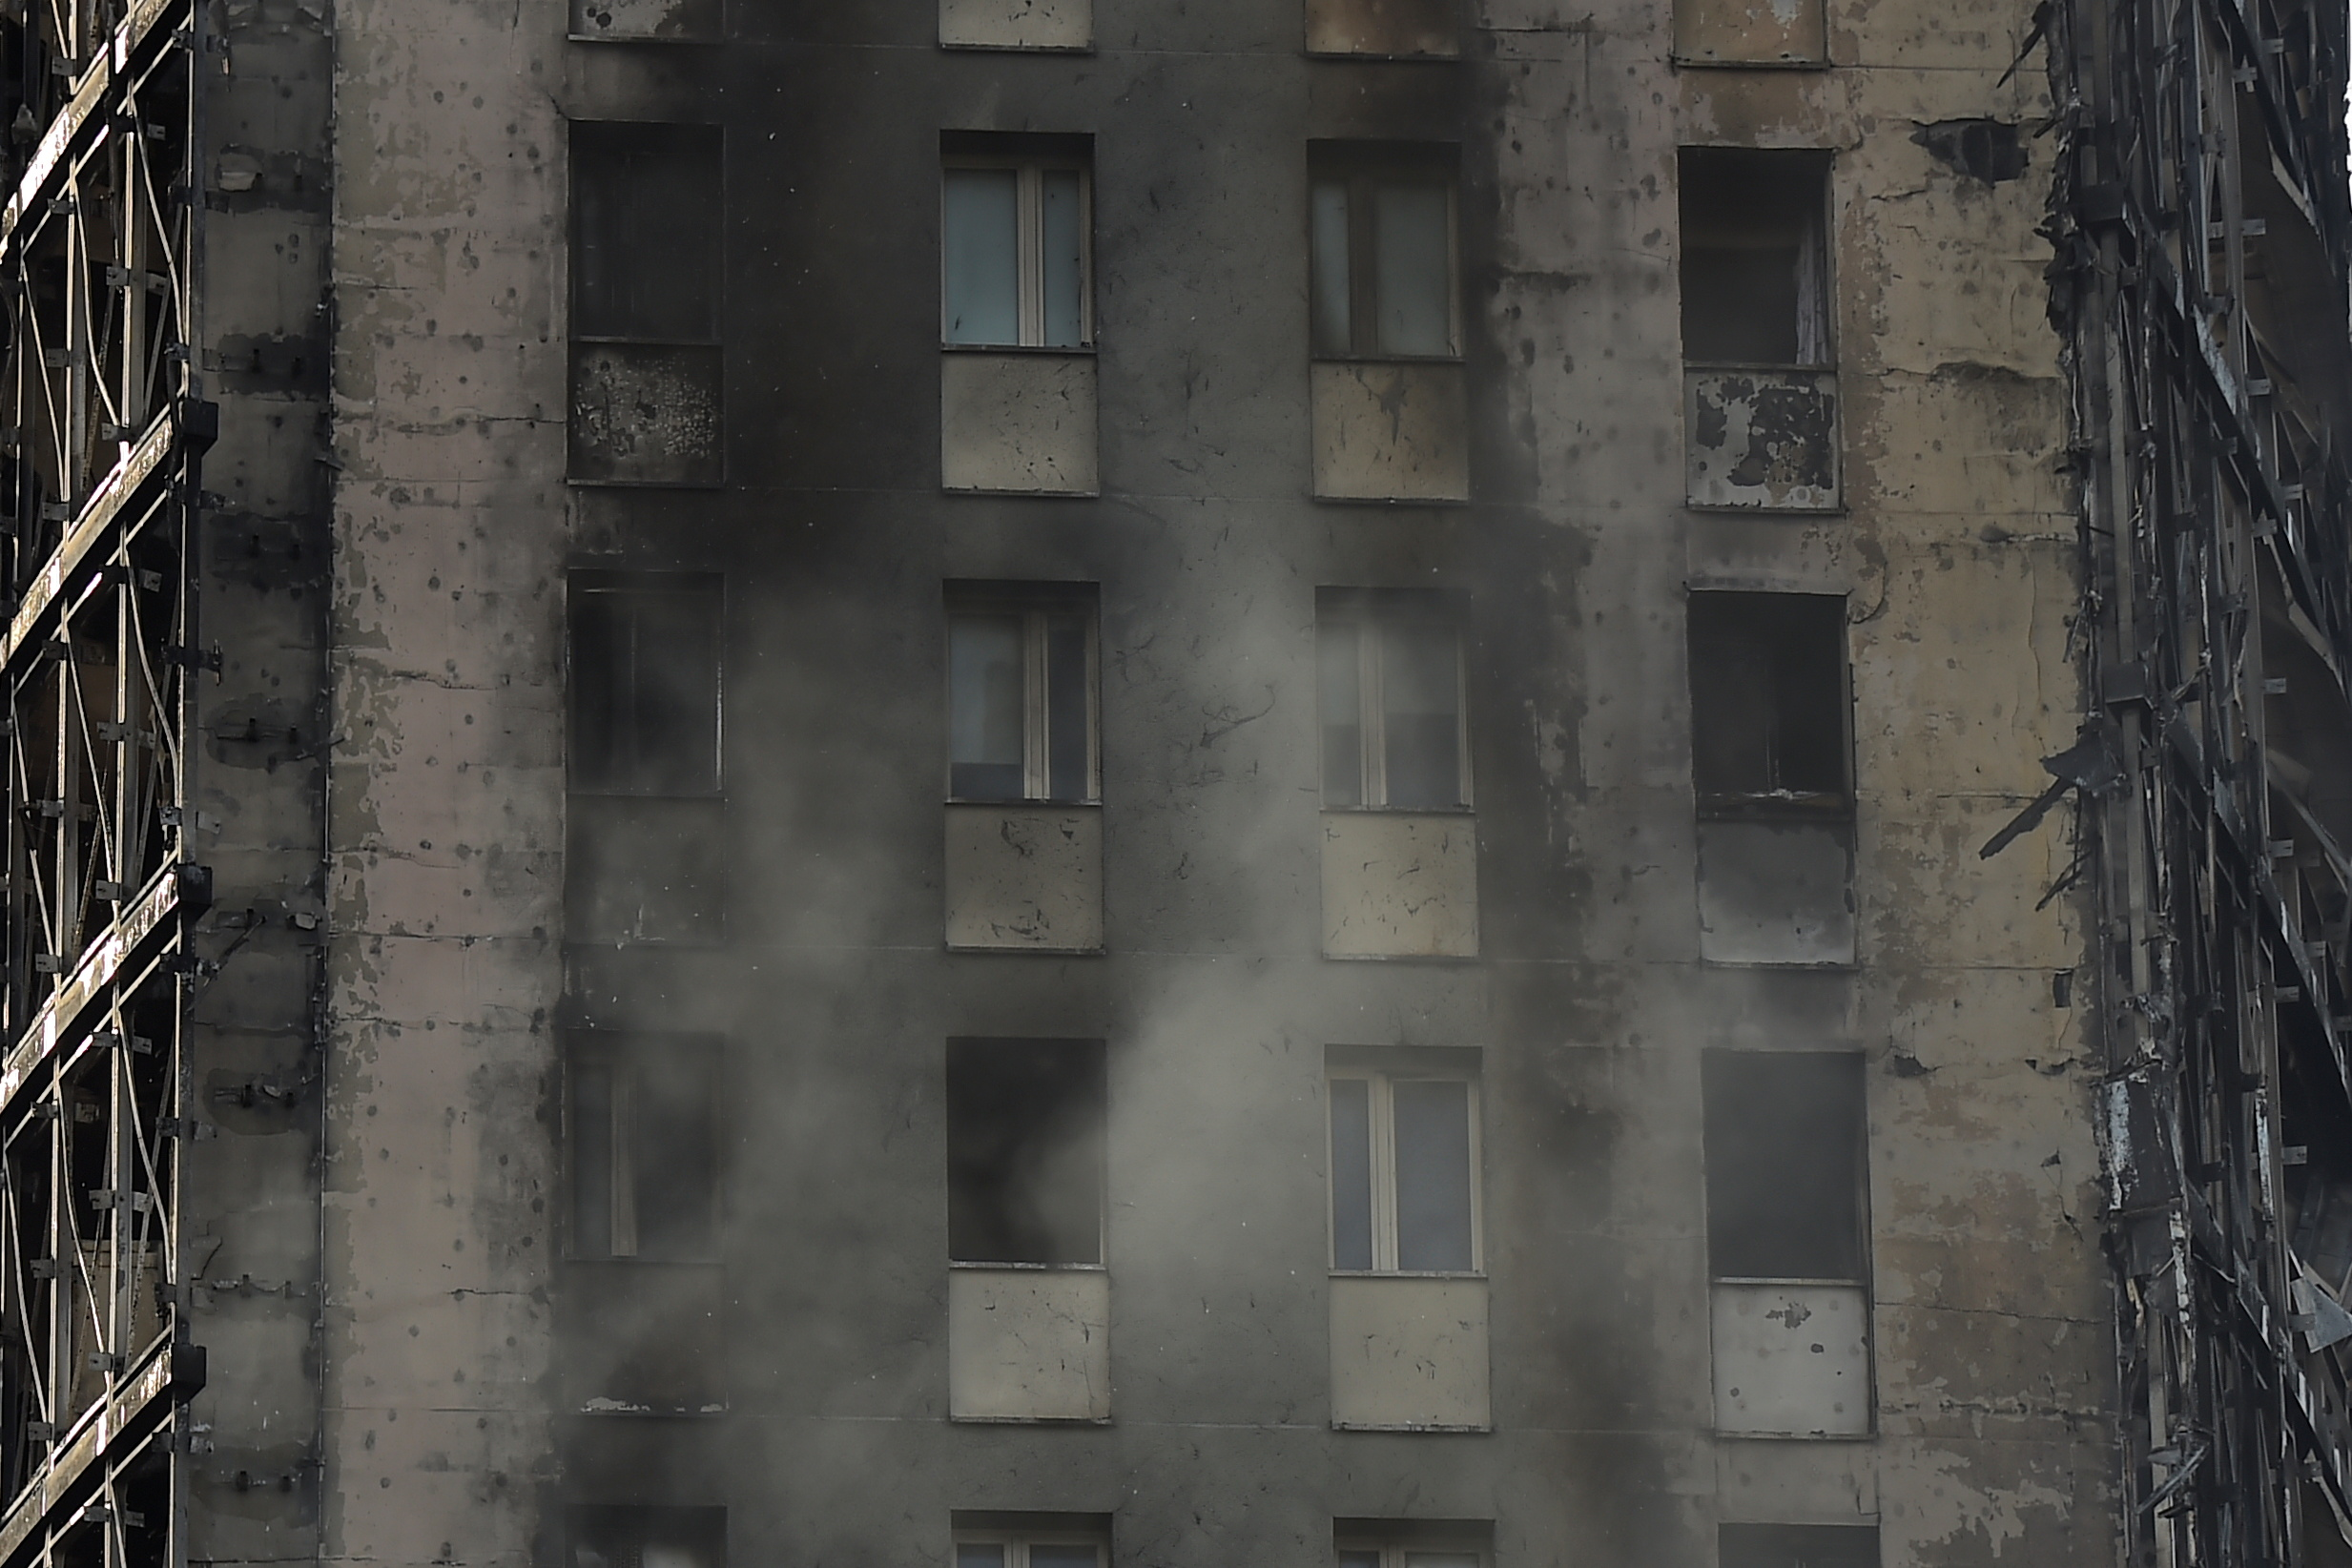 Blackened ruins of a block of flats are seen after a fire ripped through the building, no injuries were reported, in Milan, Italy, August 30, 2021. REUTERS/Flavio Lo Scalzo